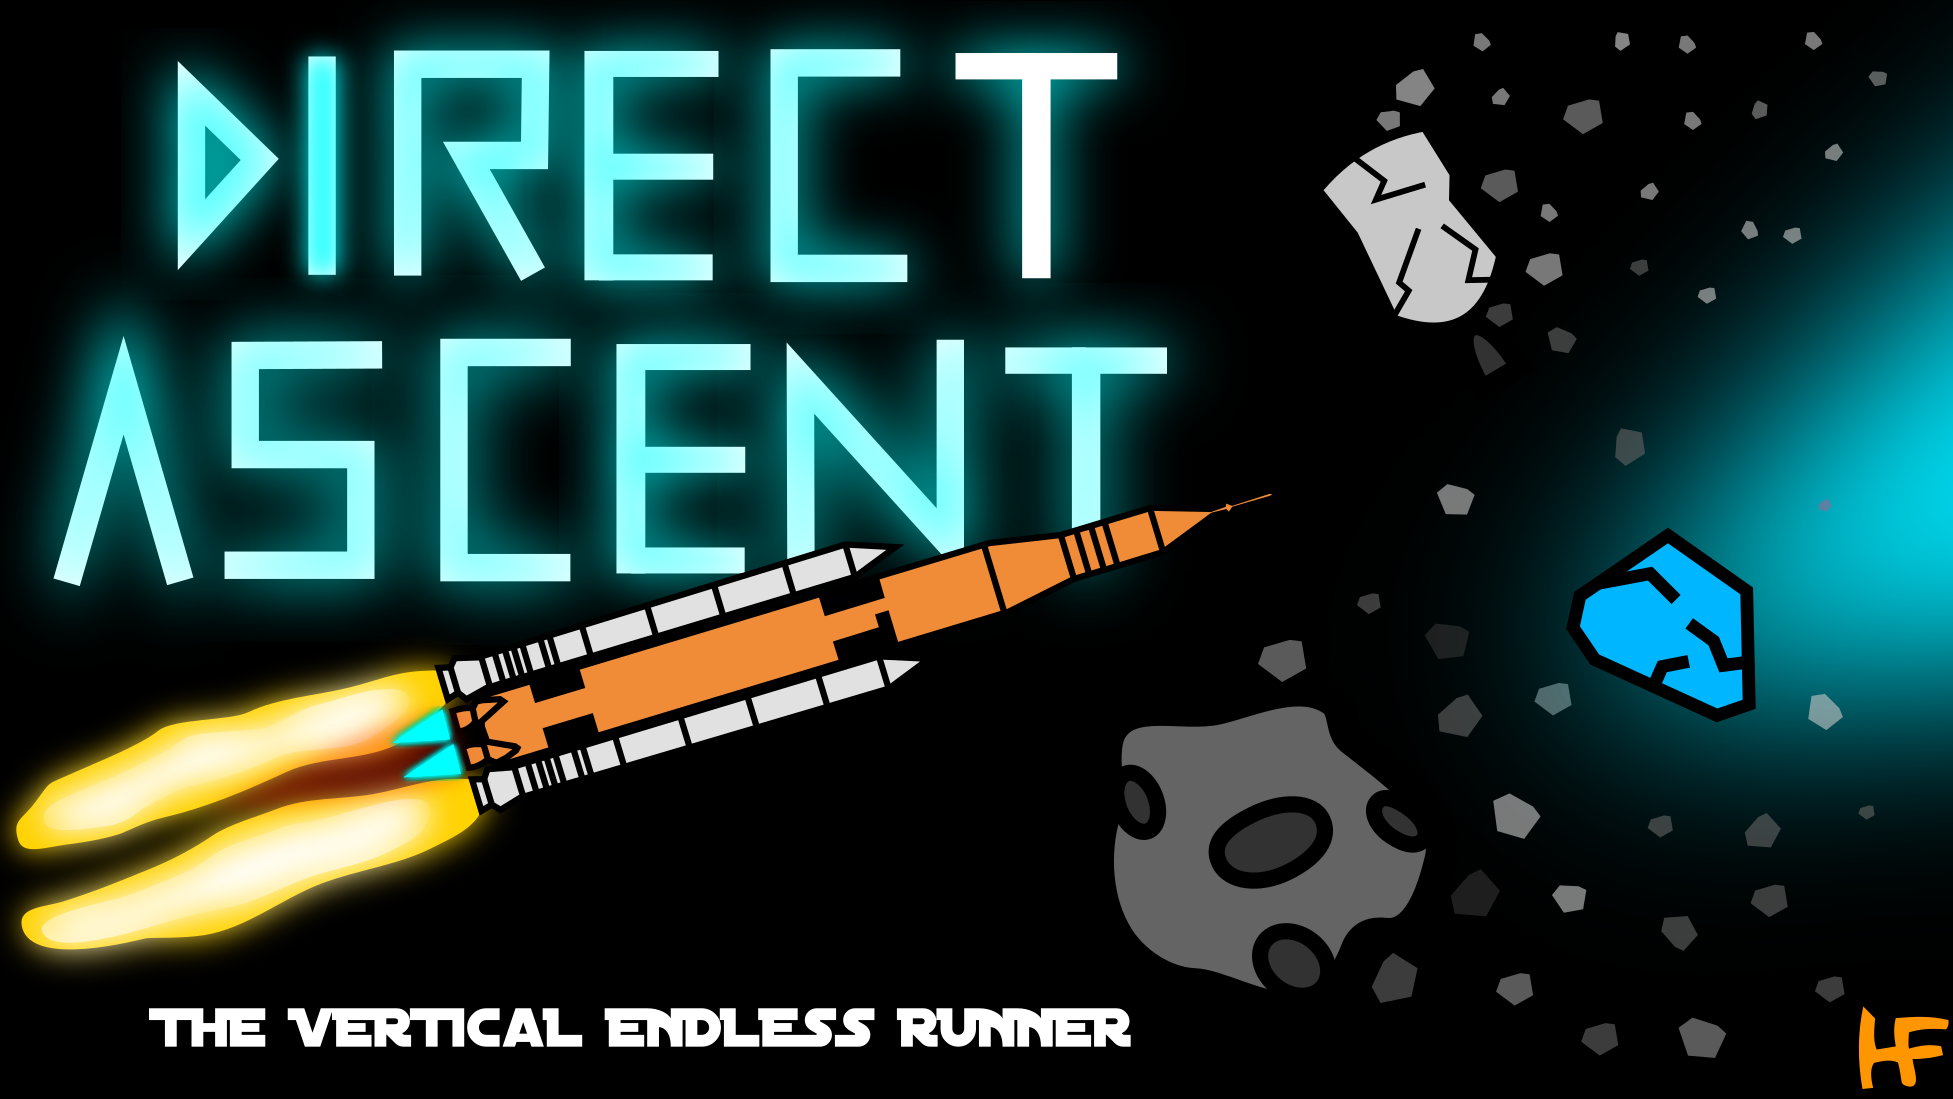 Direct Ascent - The Rocket Runner